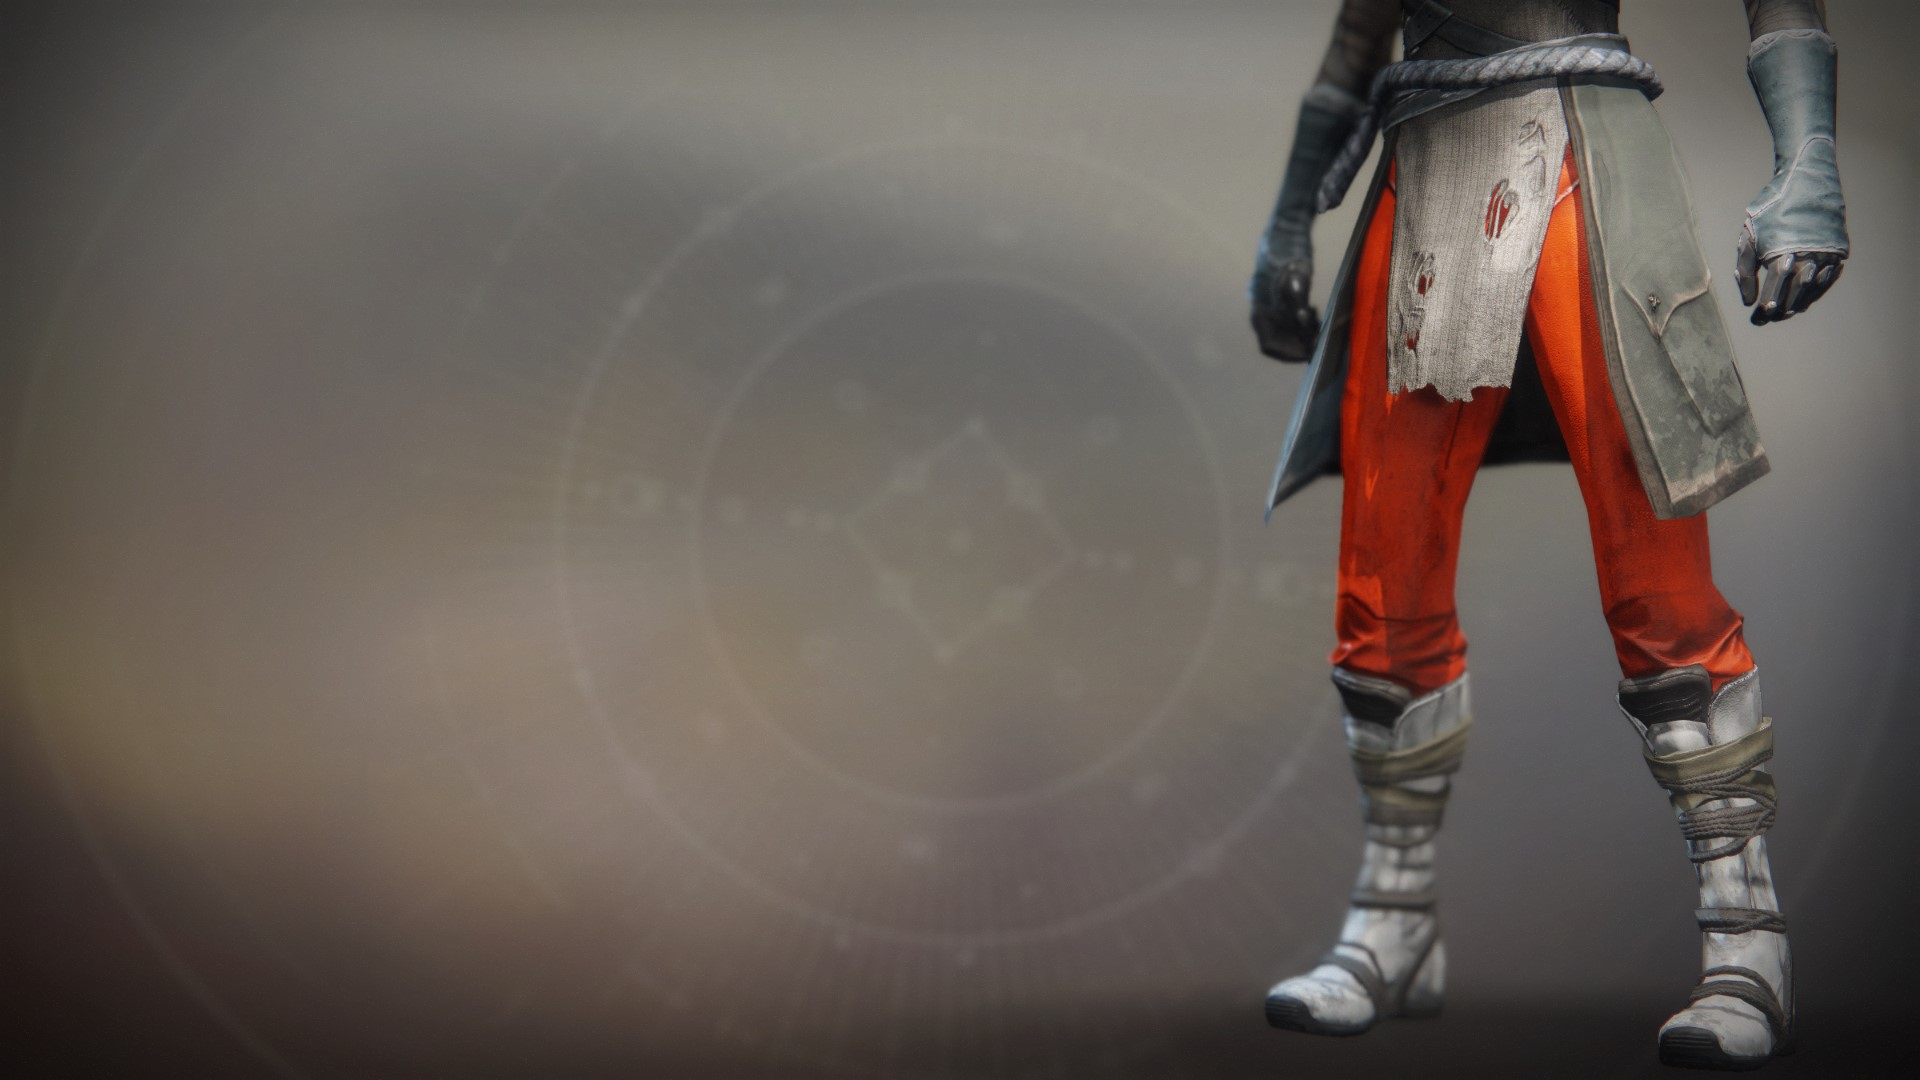 An in-game render of the Fire-Forged Warlock Leg Ornament.